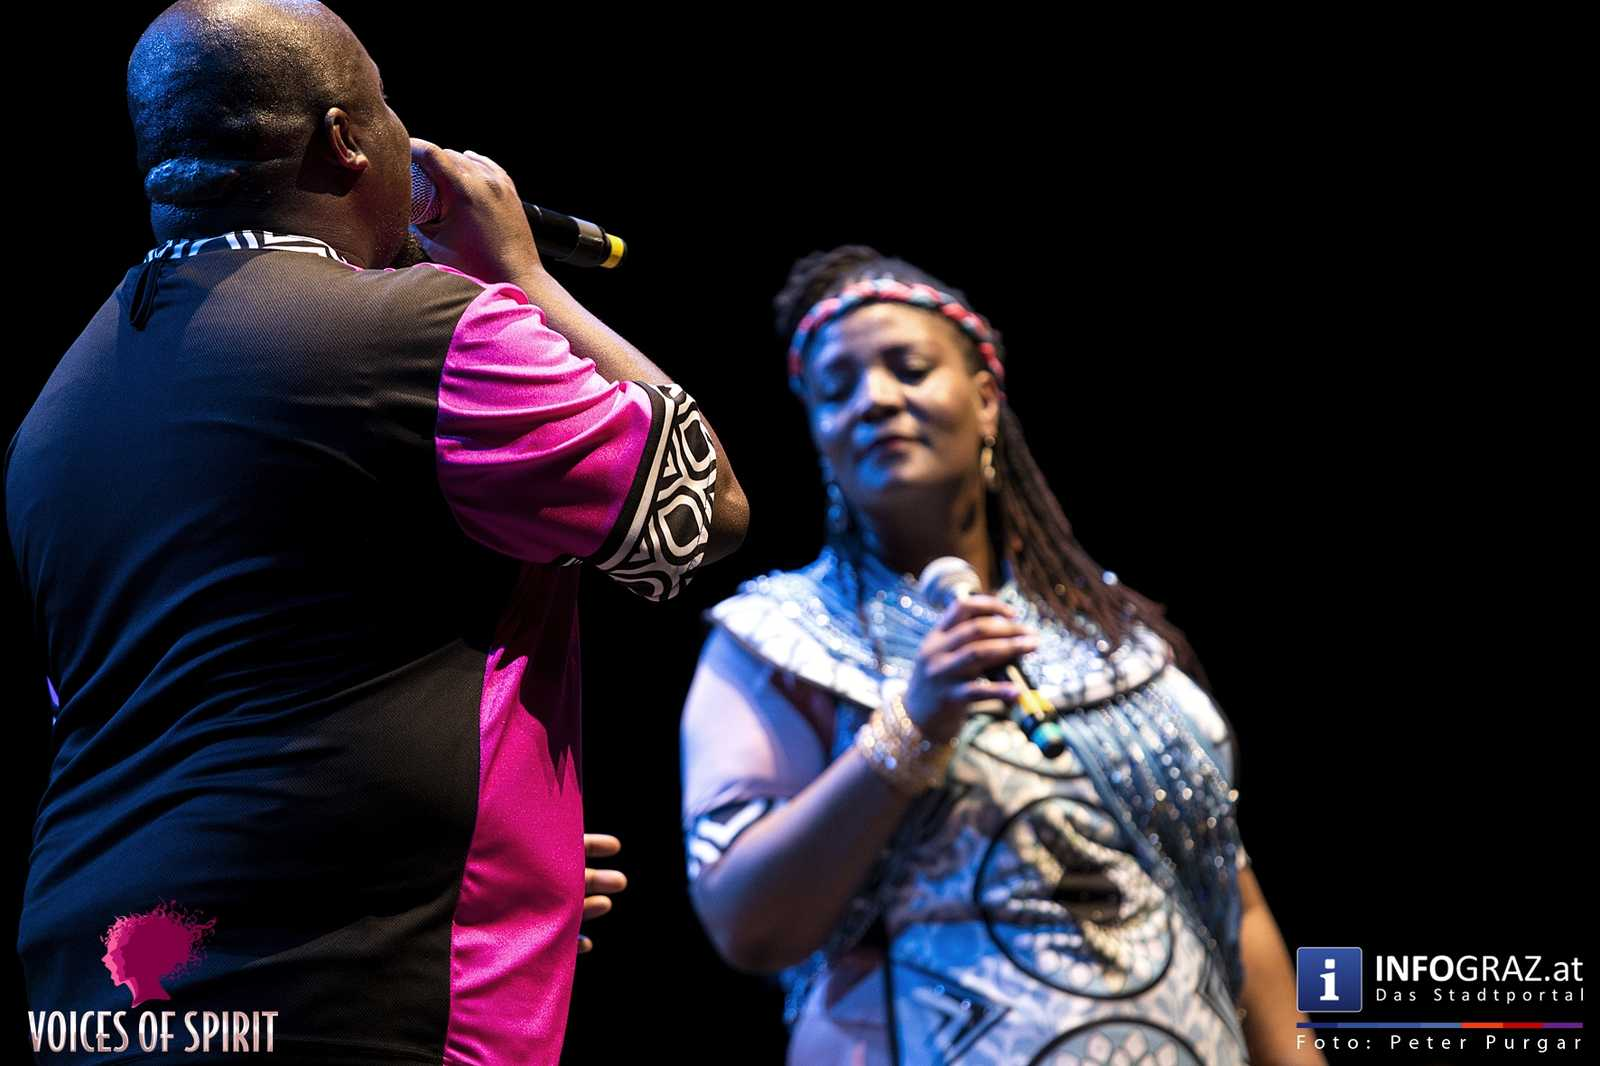 soweto gospel choir internationales chorfestival statdthalle graz voices of spirit eroeffnung festivals 2016 128